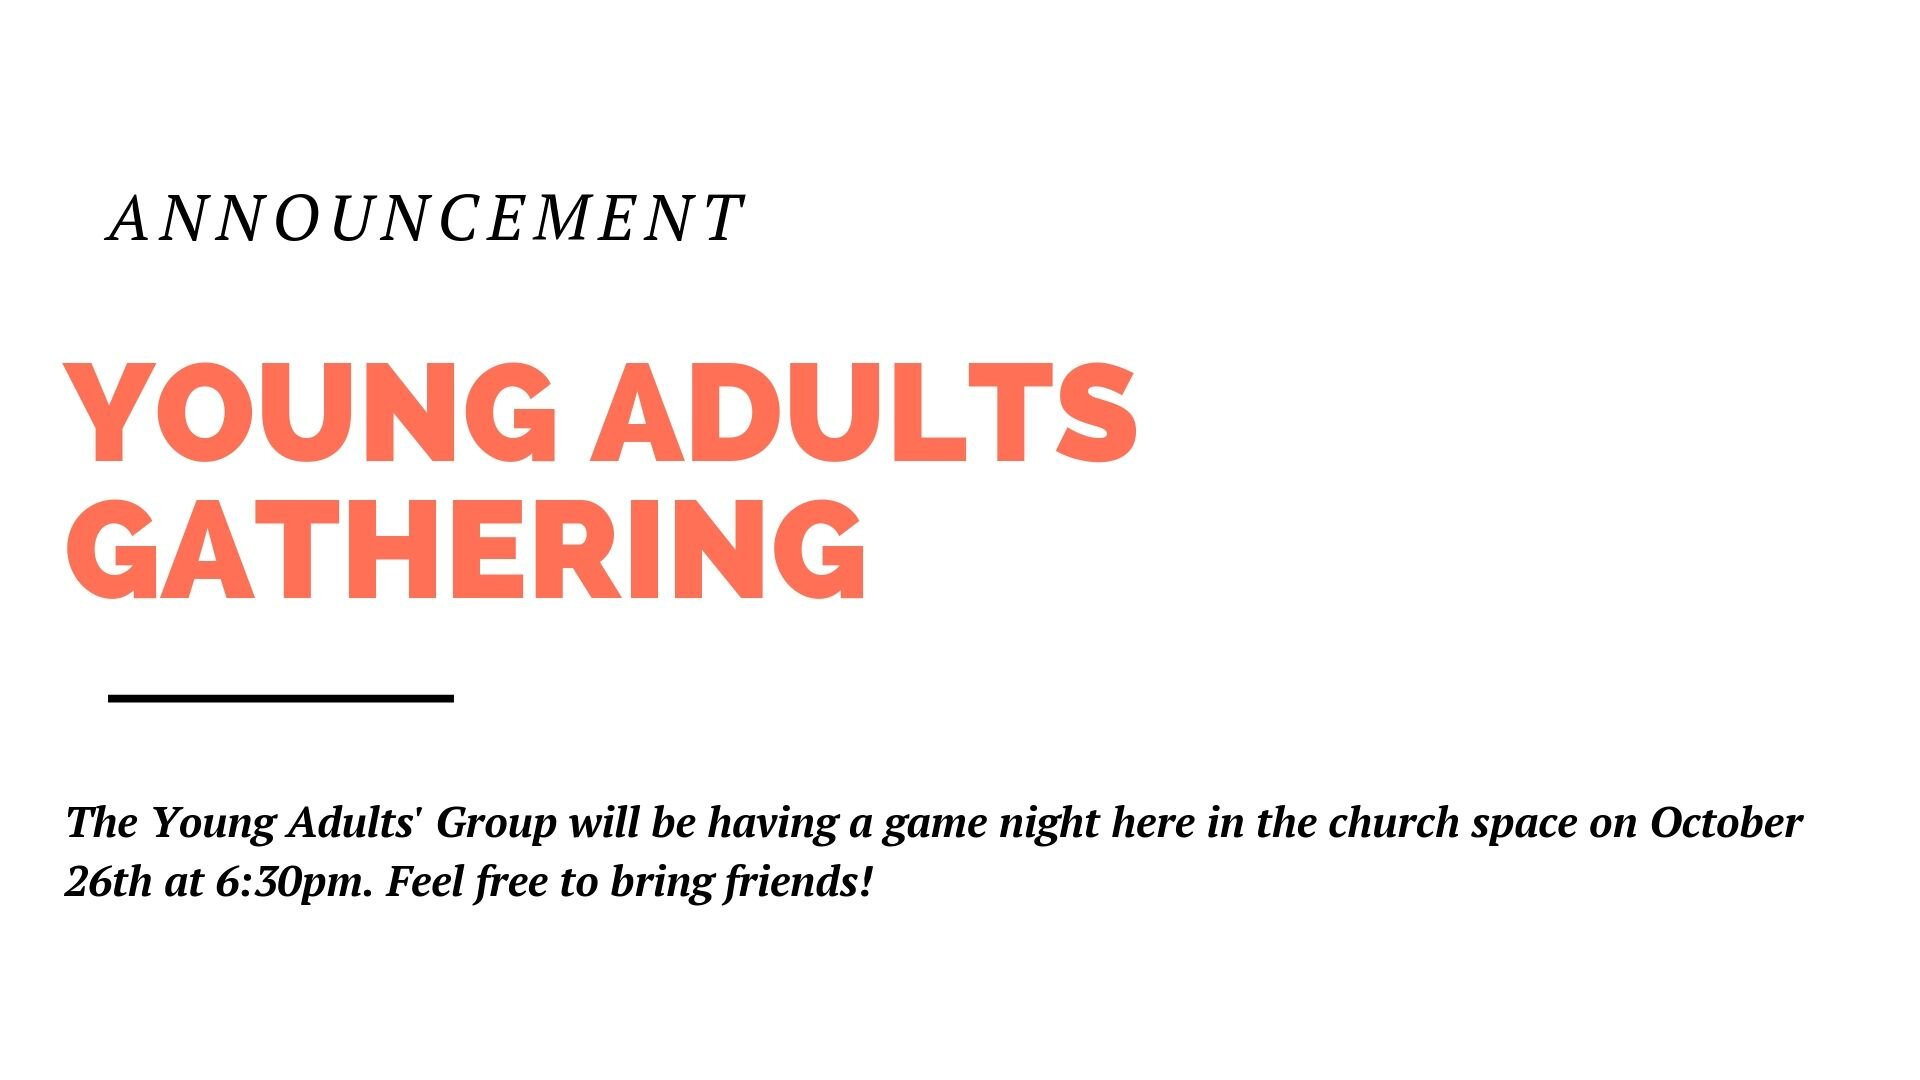 The   Young Adults' Group will be having a game night in the church space on October 26th at 6:30pm. Feel free to bring friends!